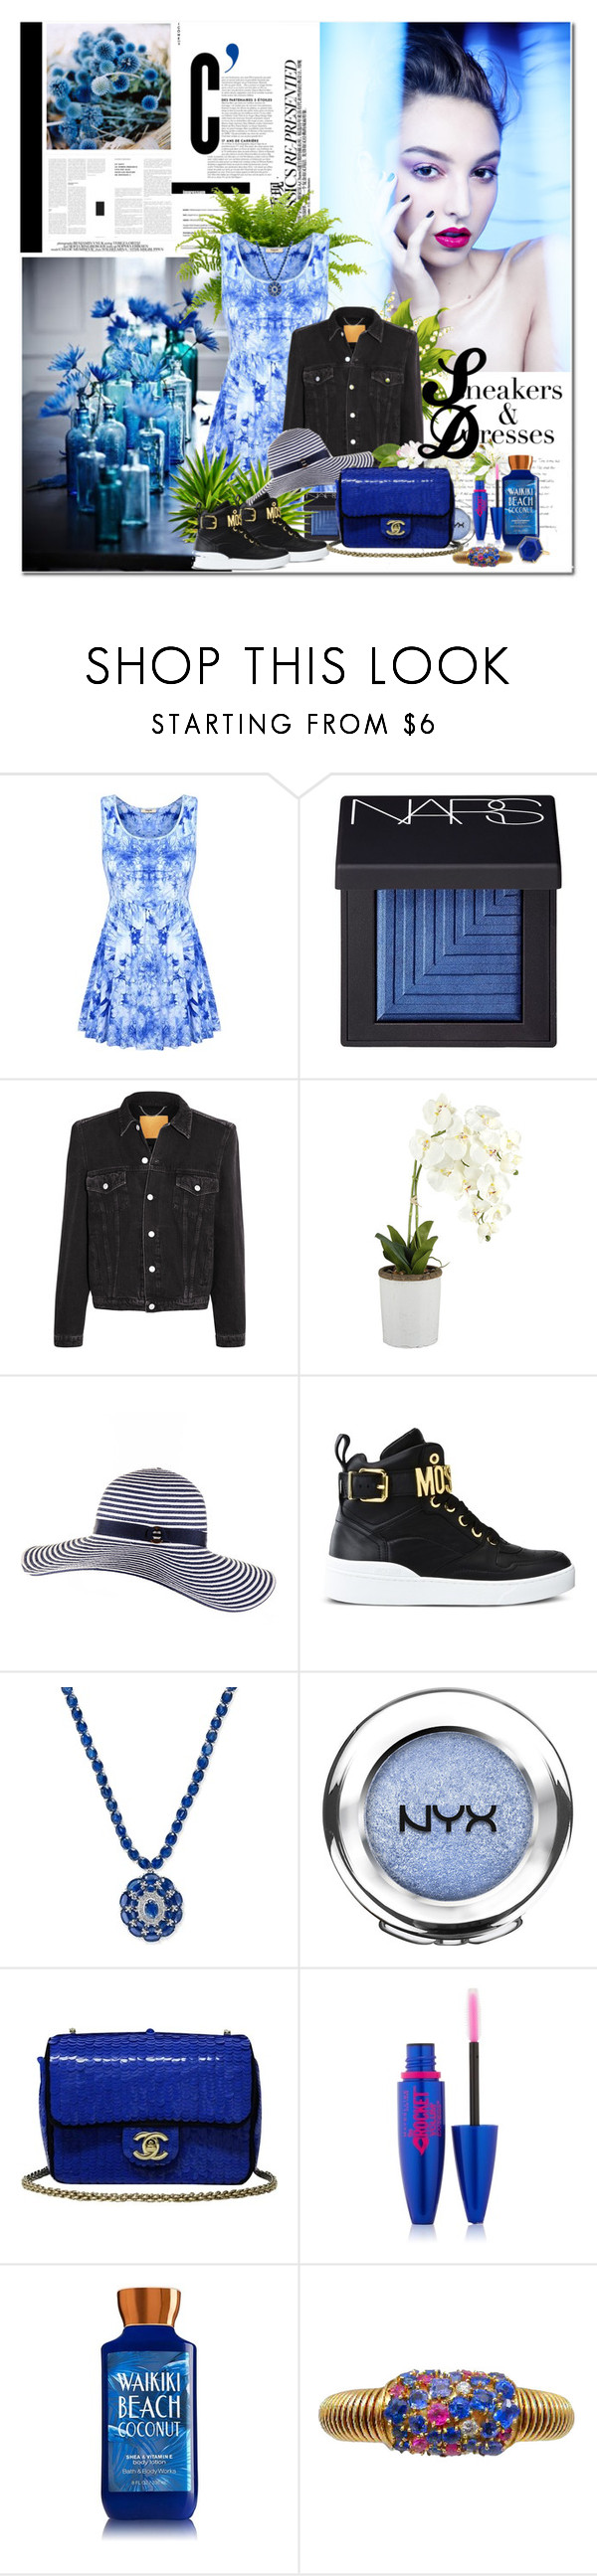 """""""MOODY BLUE Sneakers & Dresses"""" by k-hearts-a ❤ liked on Polyvore featuring Chloé, Chanel, NARS Cosmetics, Balenciaga, Black, Moschino, NYX, Maybelline and Anne Sisteron"""